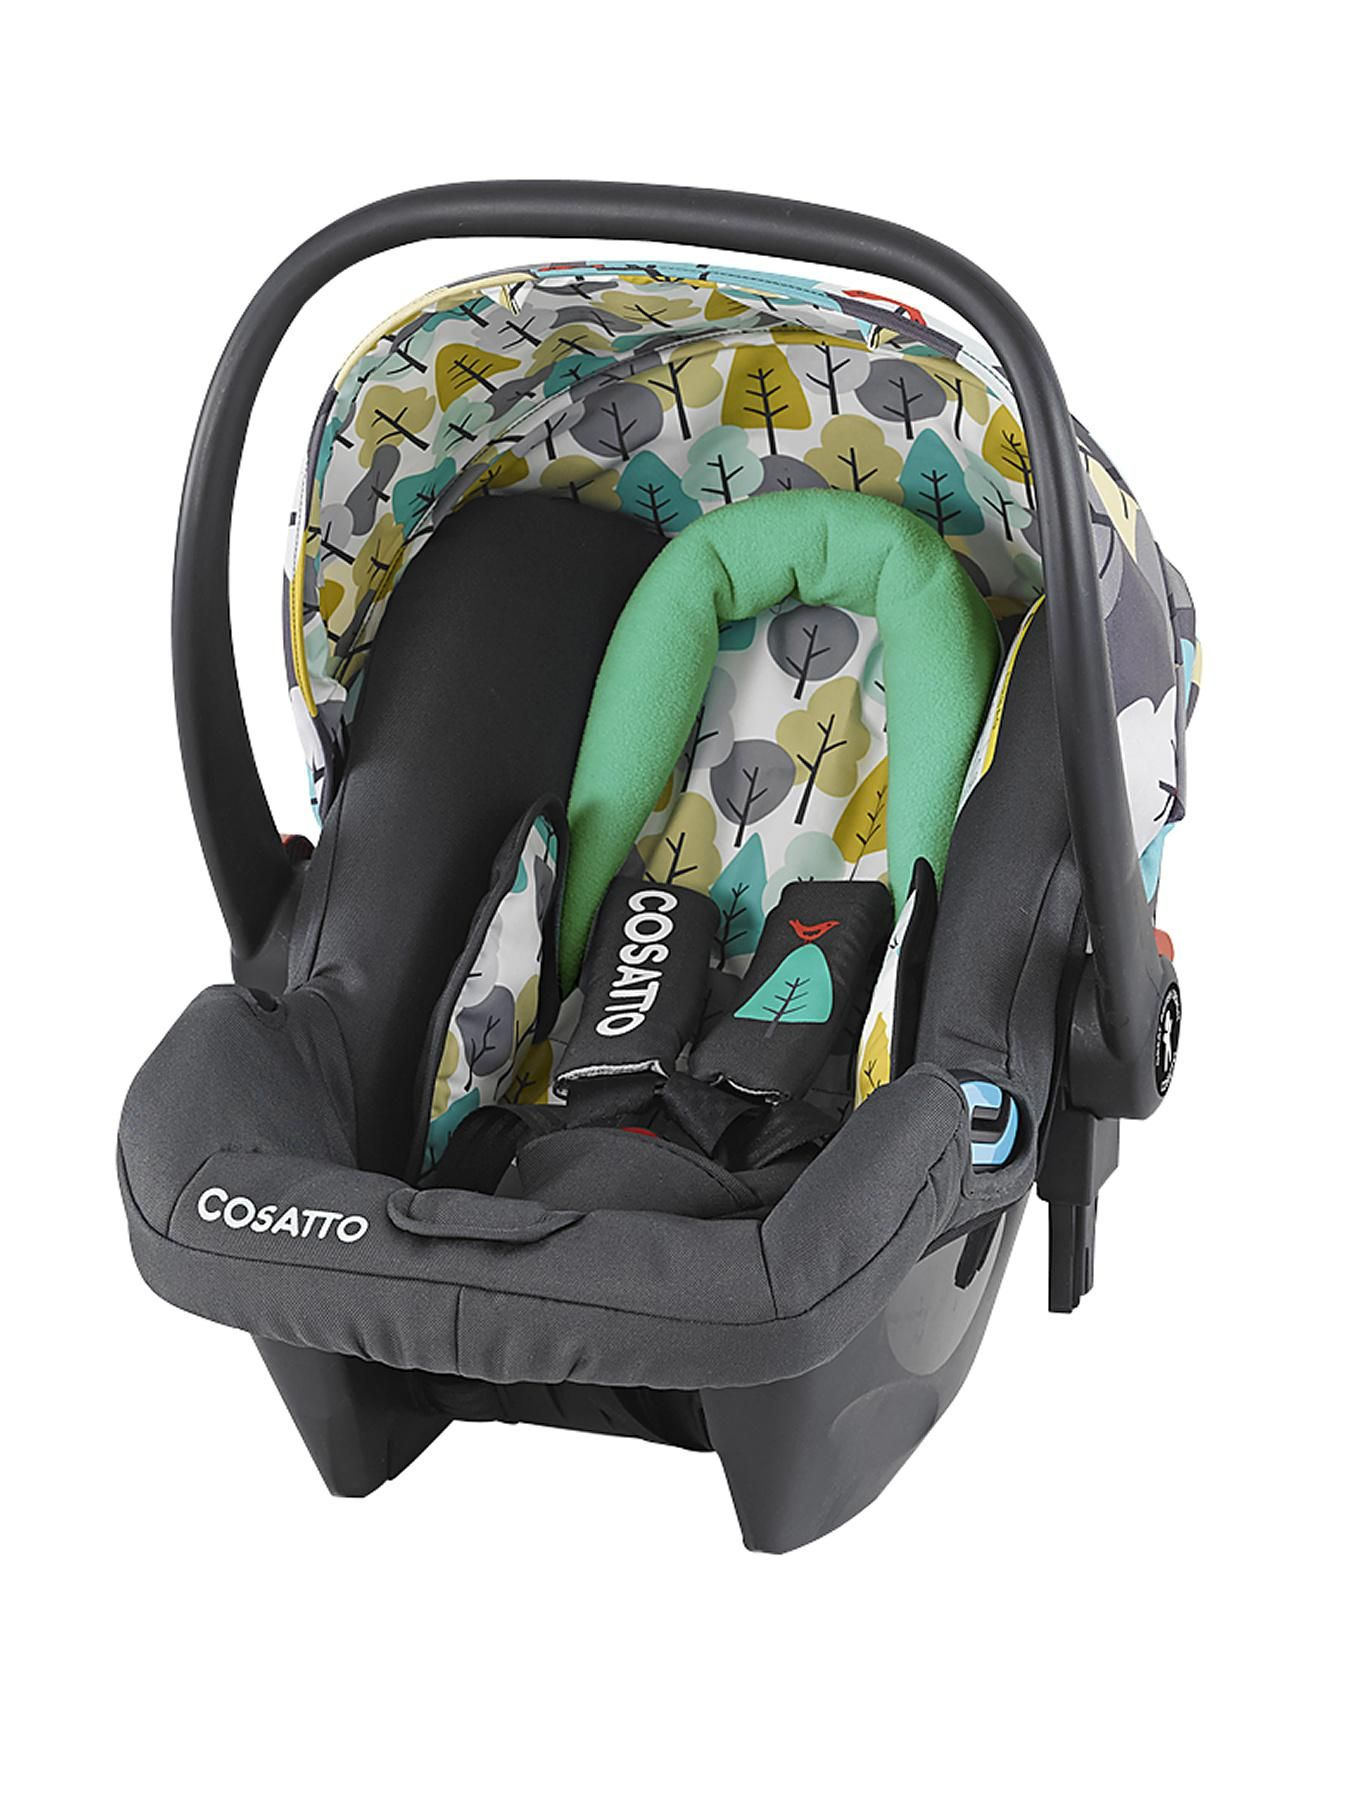 Baby Car Seat Uk Womens Mens And Kids Fashion Furniture Electricals More